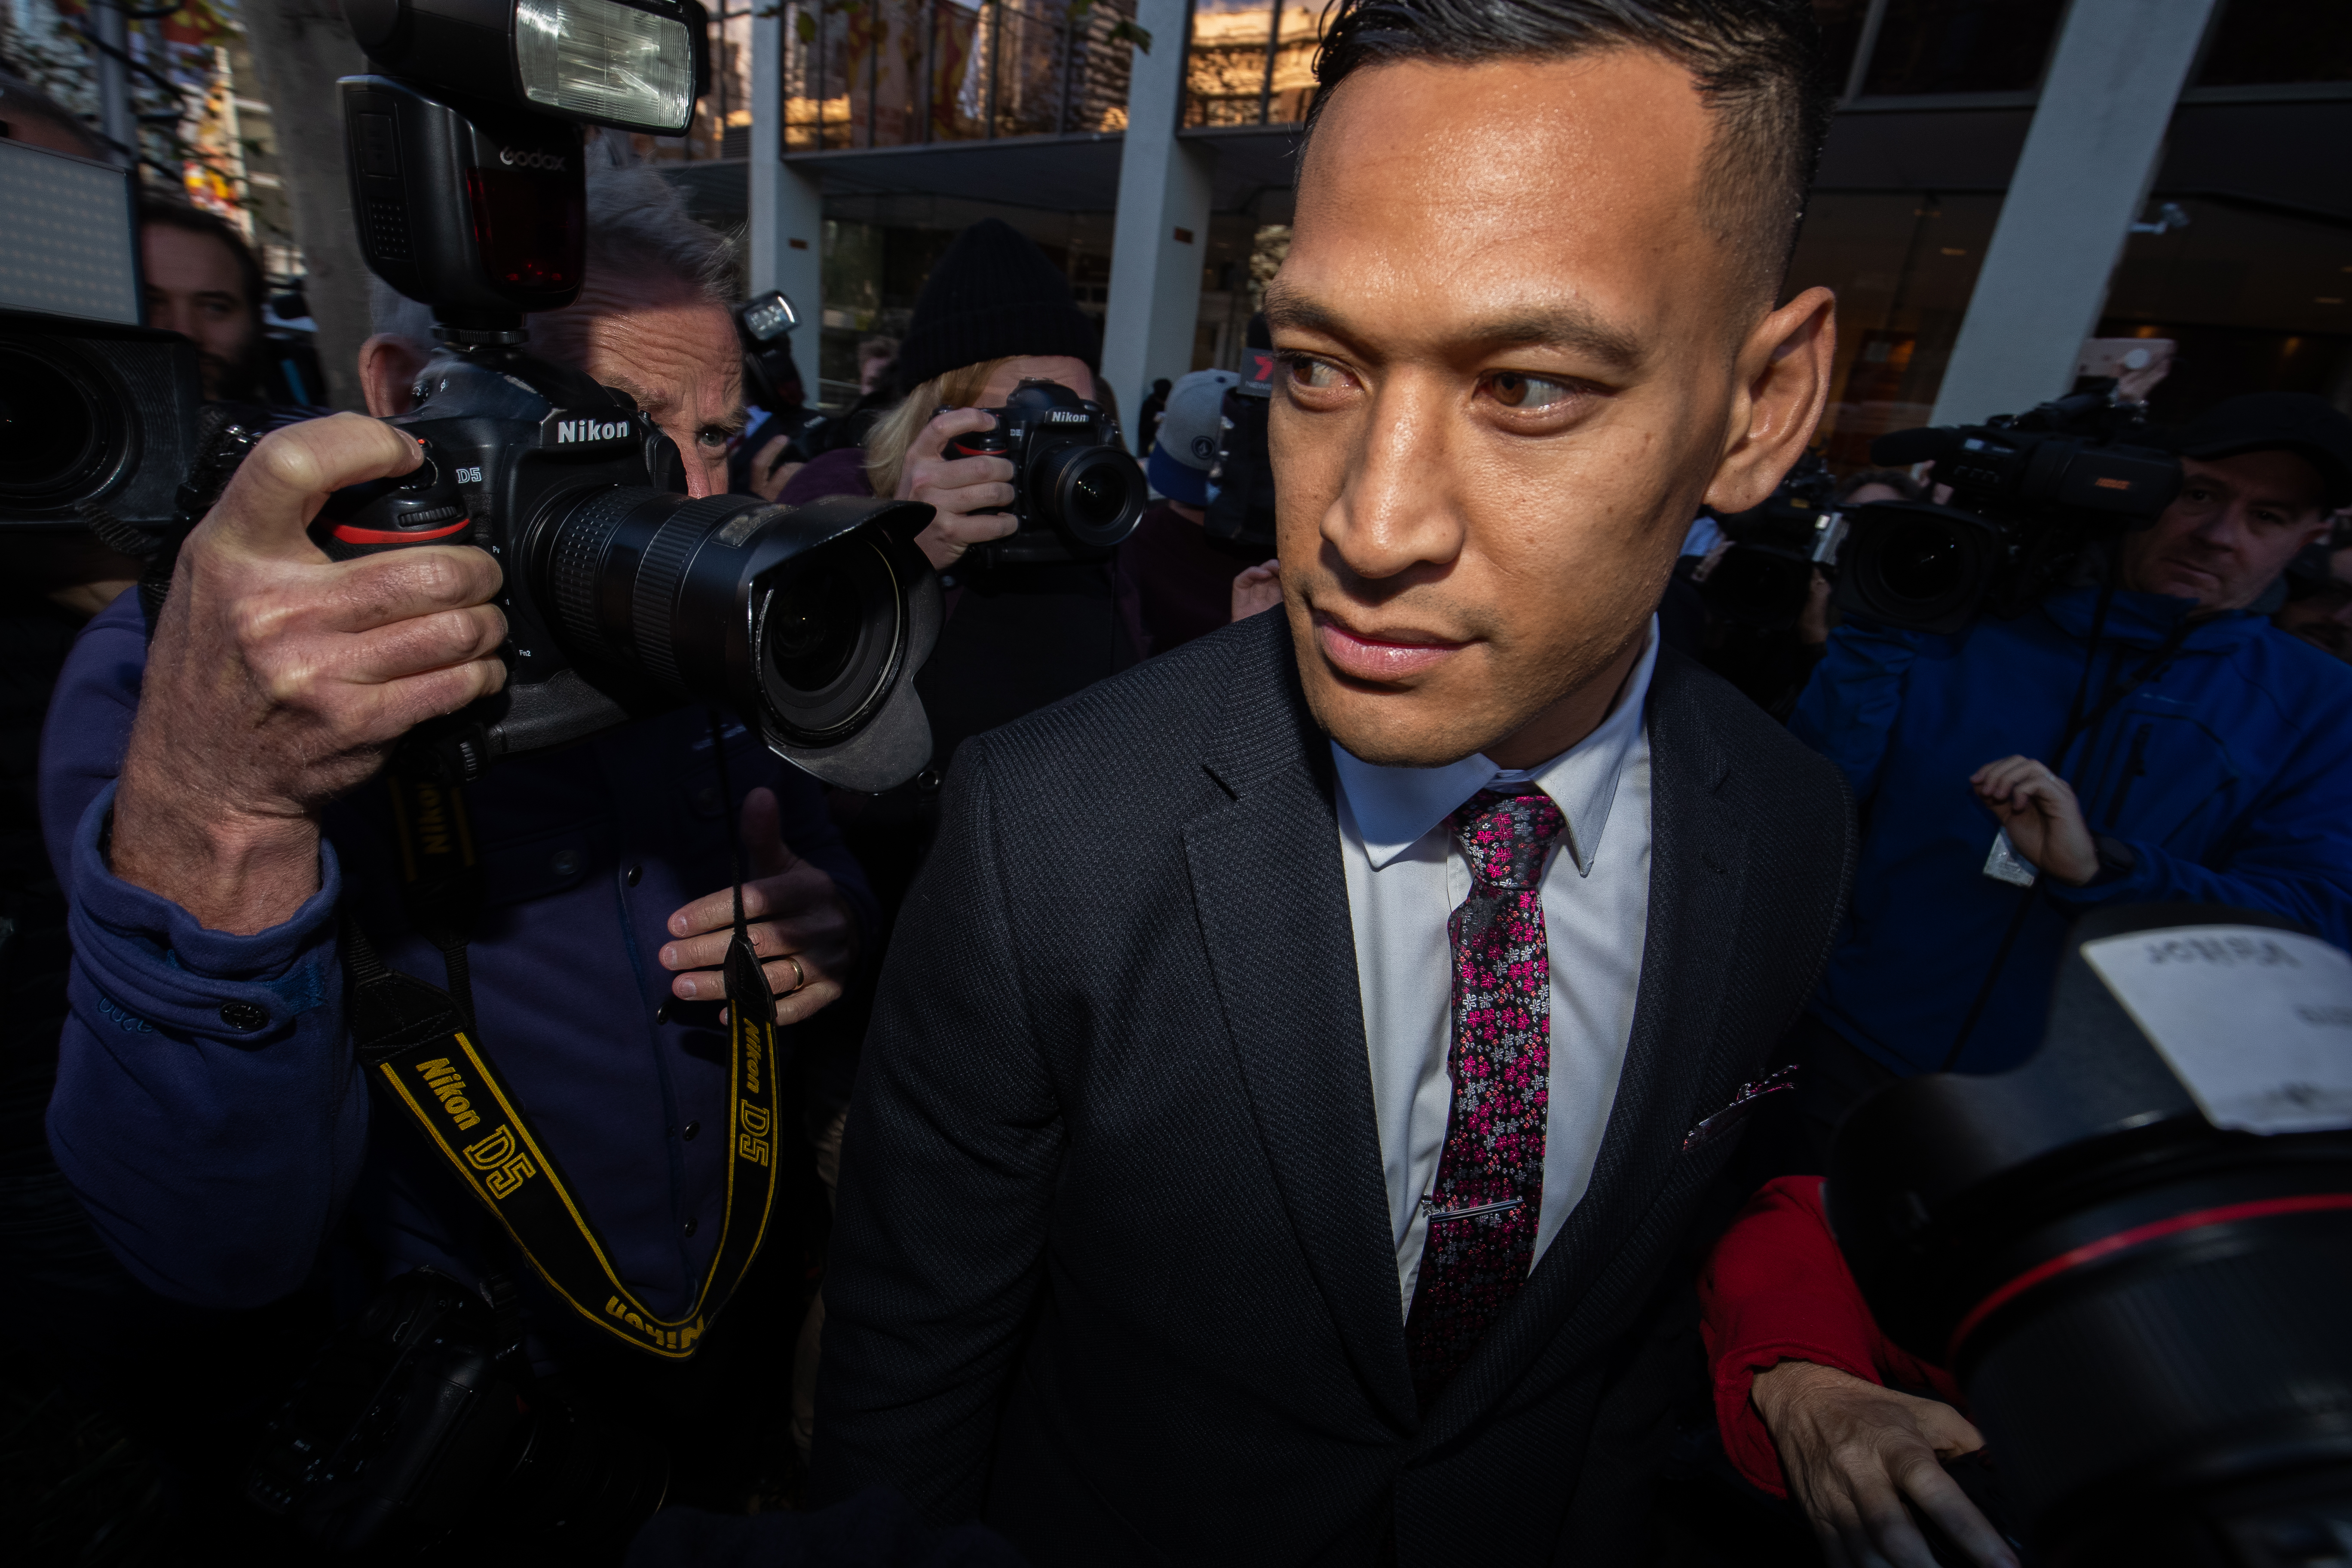 Israel Folau departs his conciliation meeting with Rugby Australia at Fair Work Commission on June 28, 2019 in Sydney.